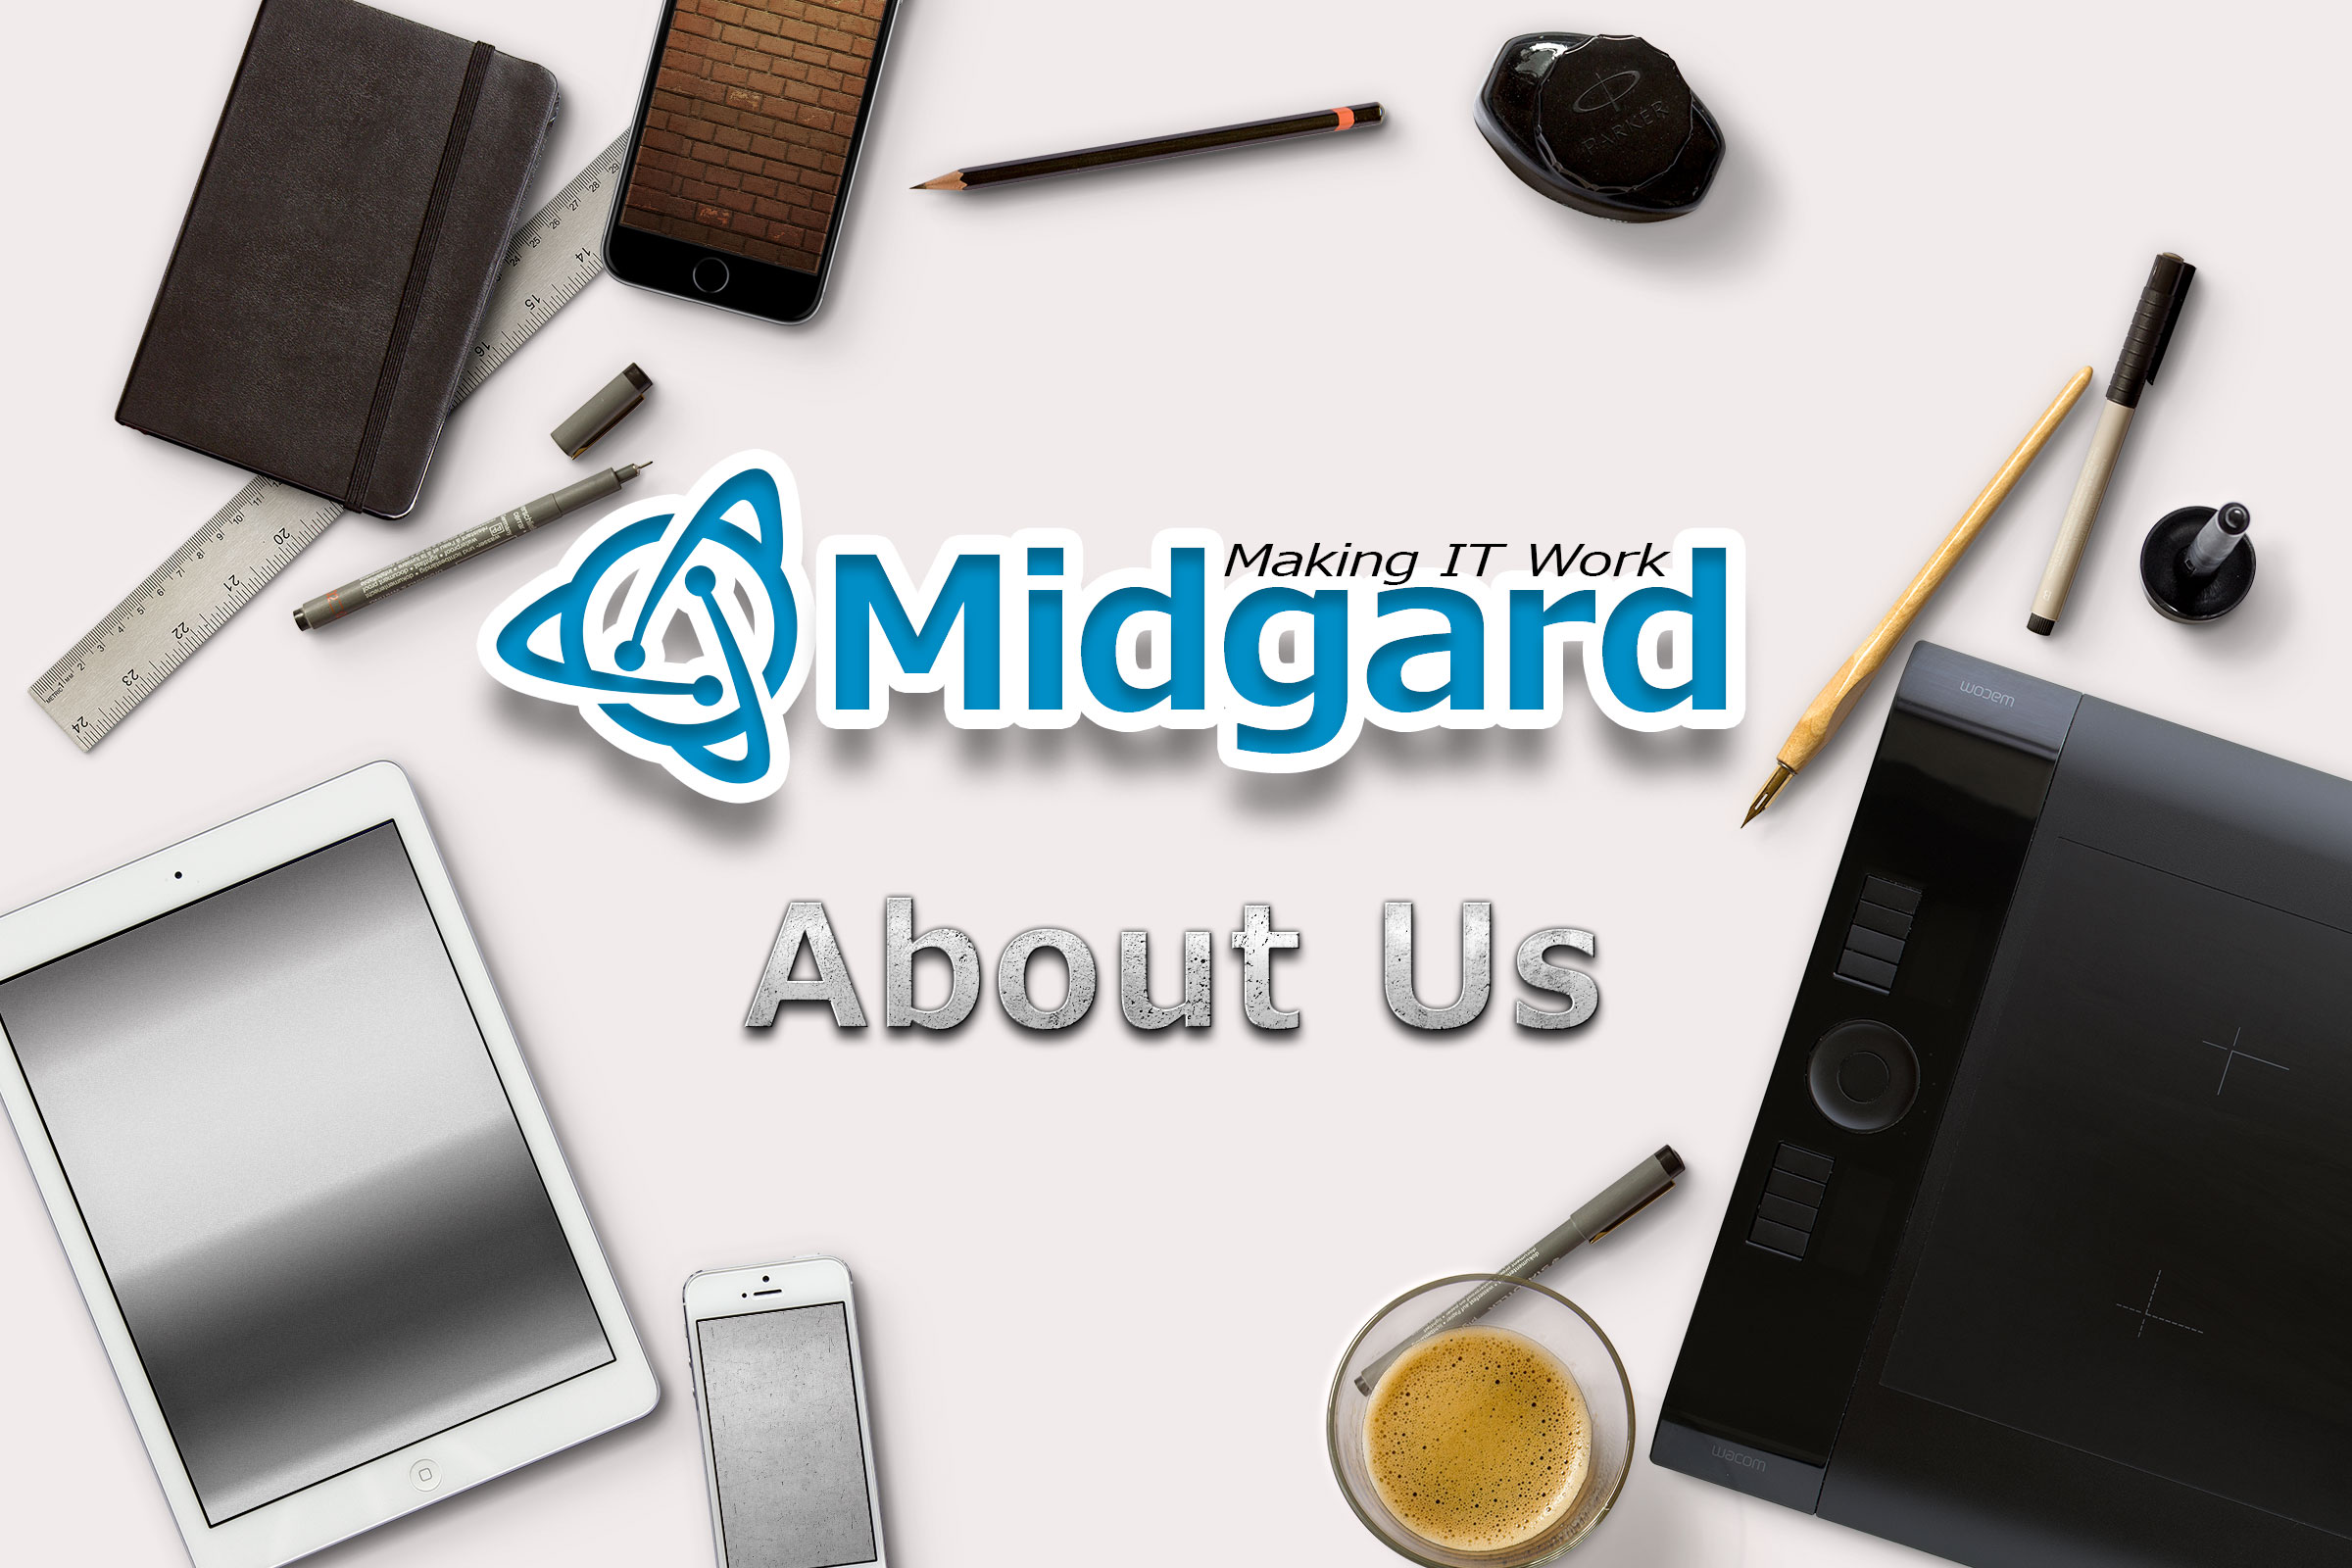 About Midgard IT Based in Swansea